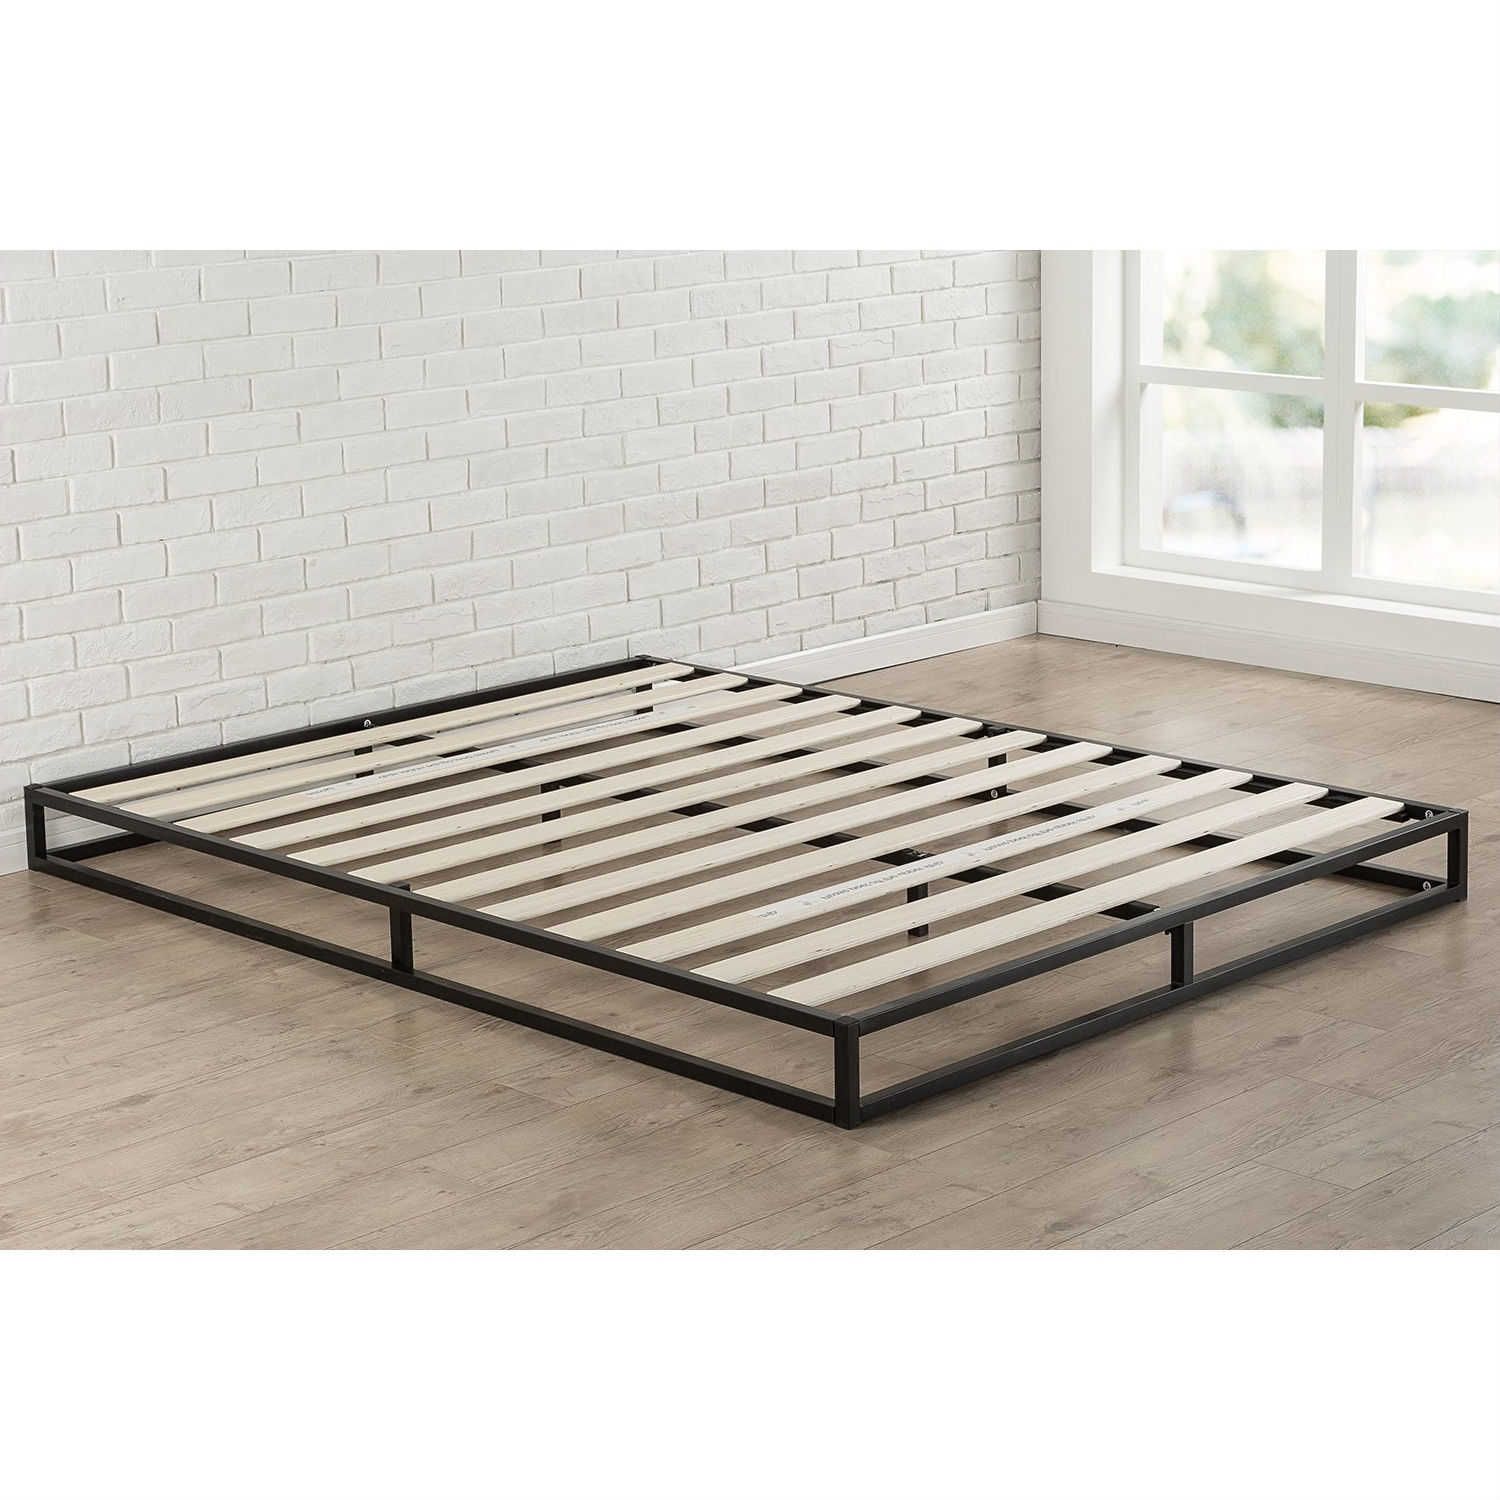 King size 6inch Low Profile Metal Platform Bed Frame with Wood